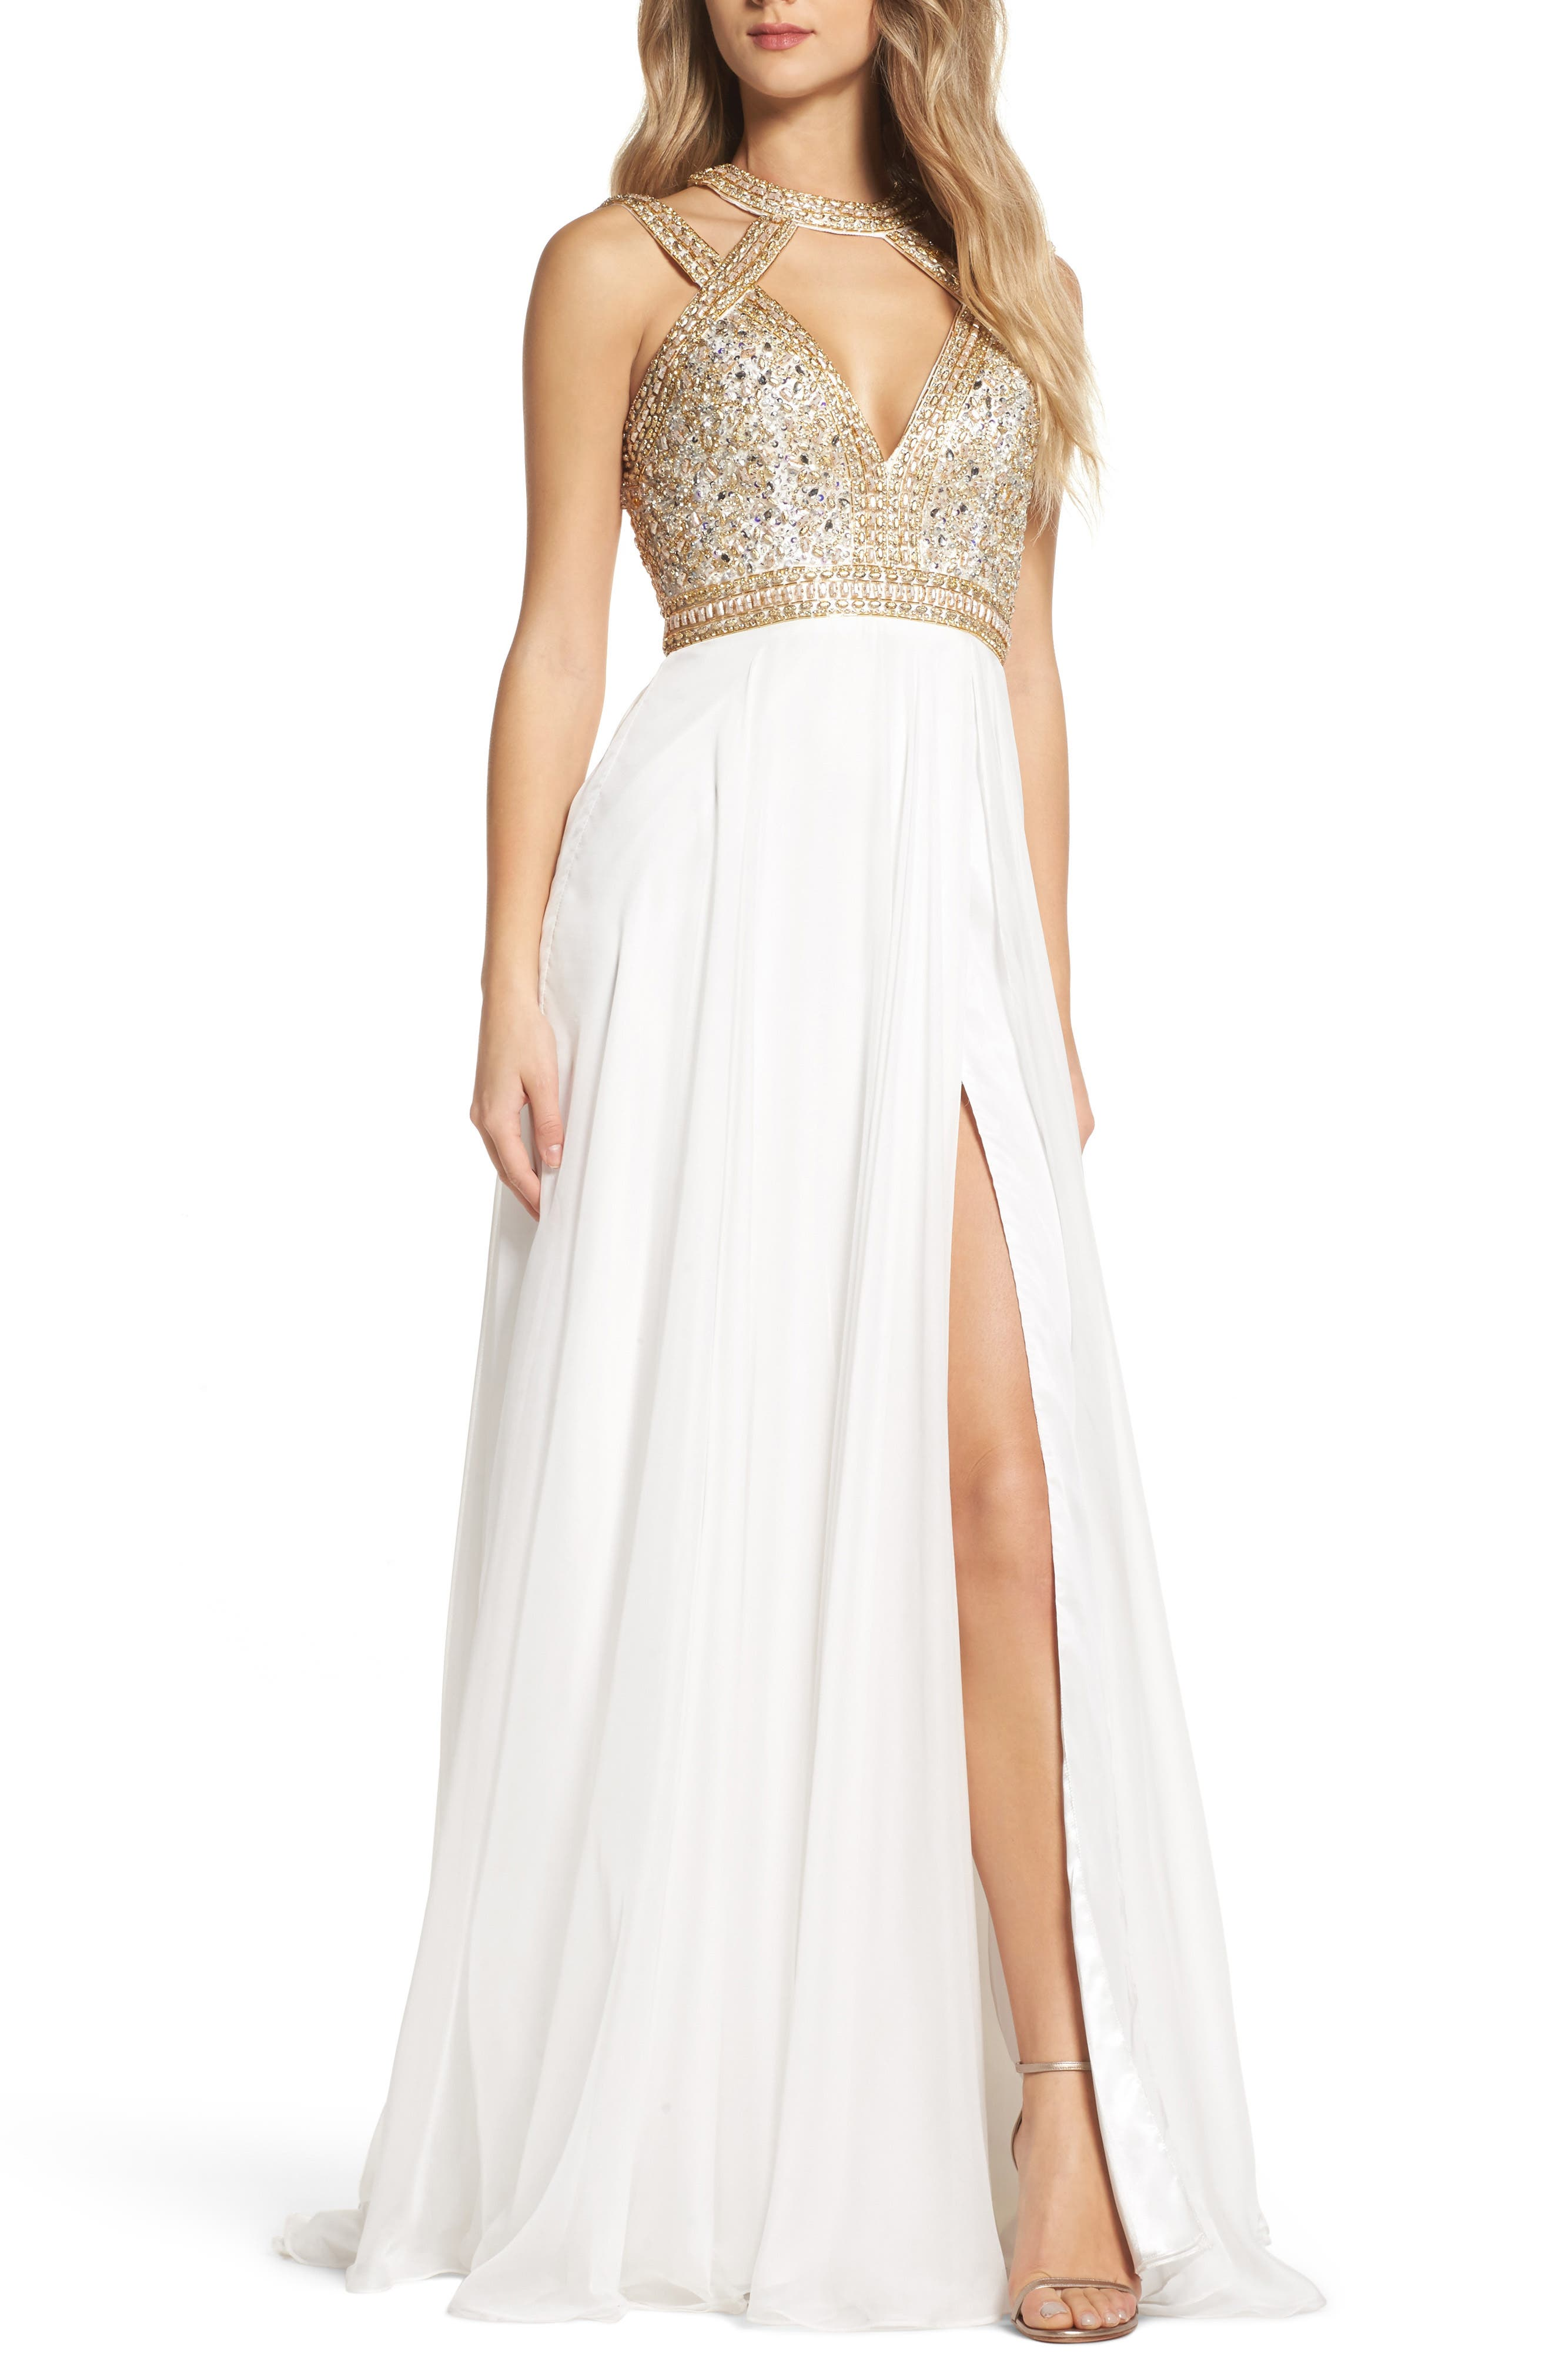 Alternate Image 1 Selected - Mac Duggal Beaded Cutout Bodice Gown